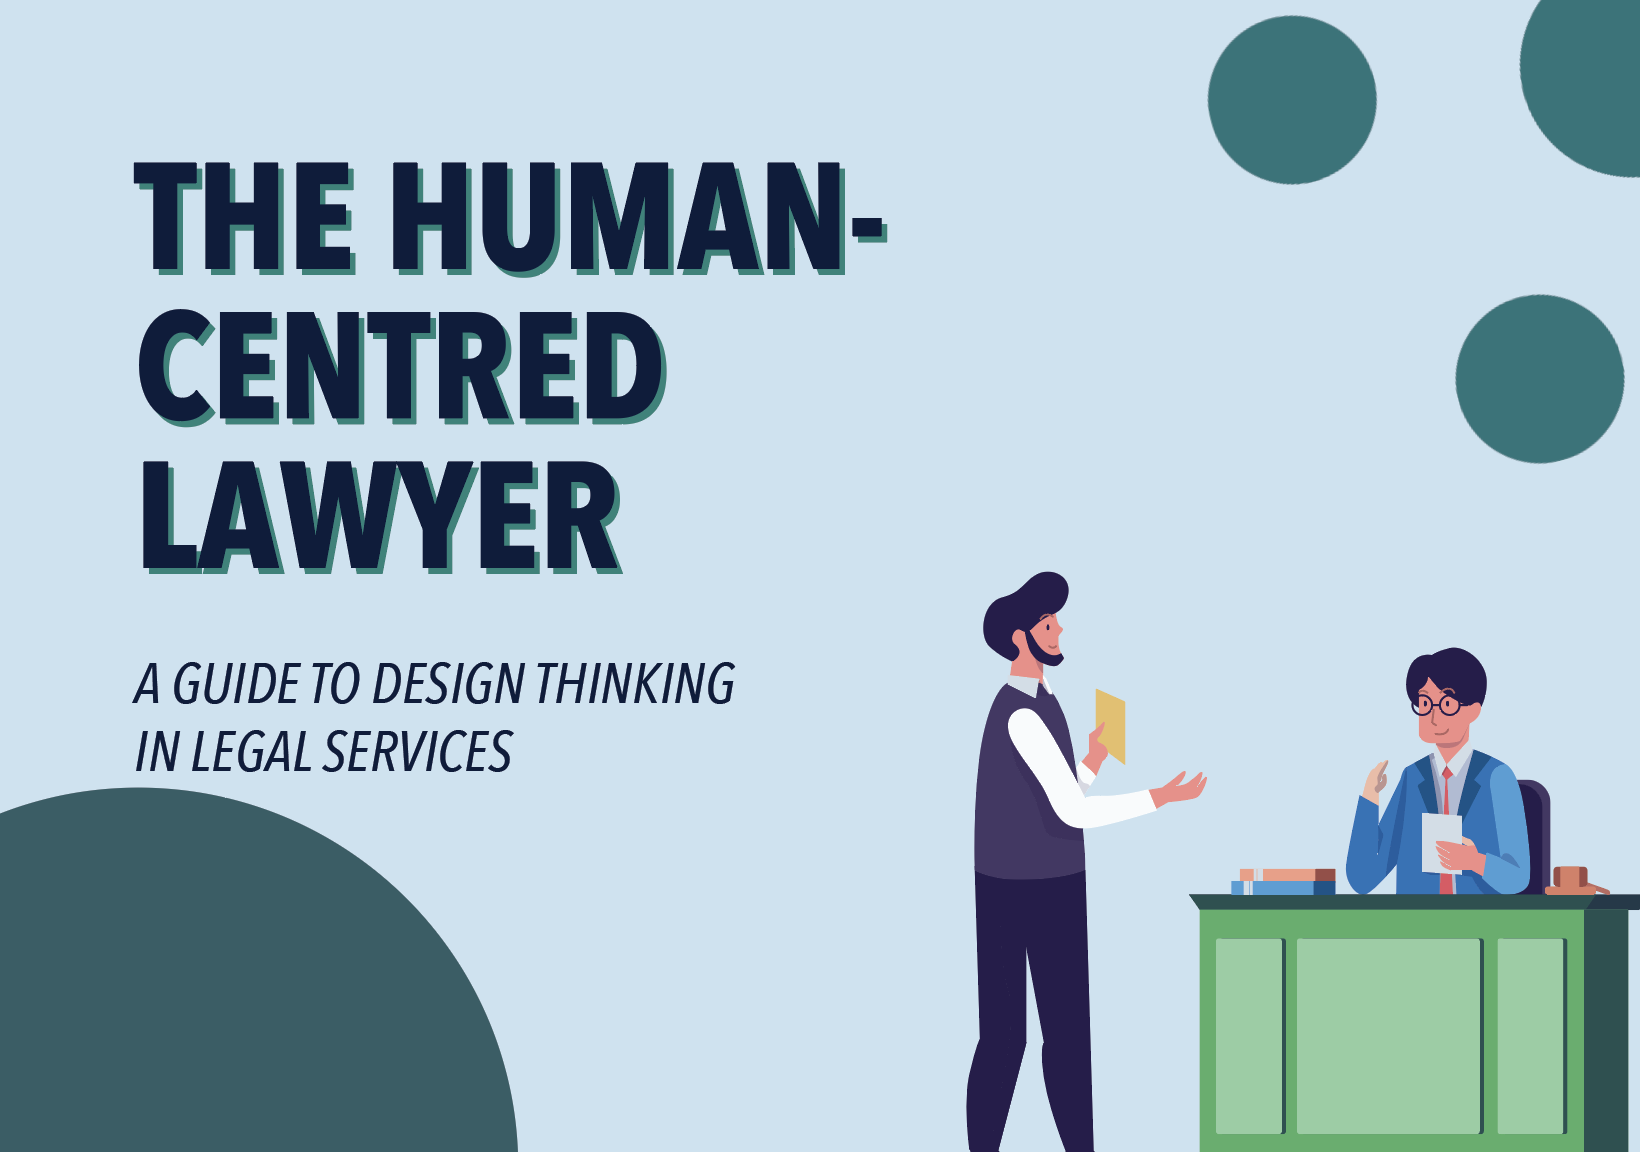 The Human-Centred Lawyer